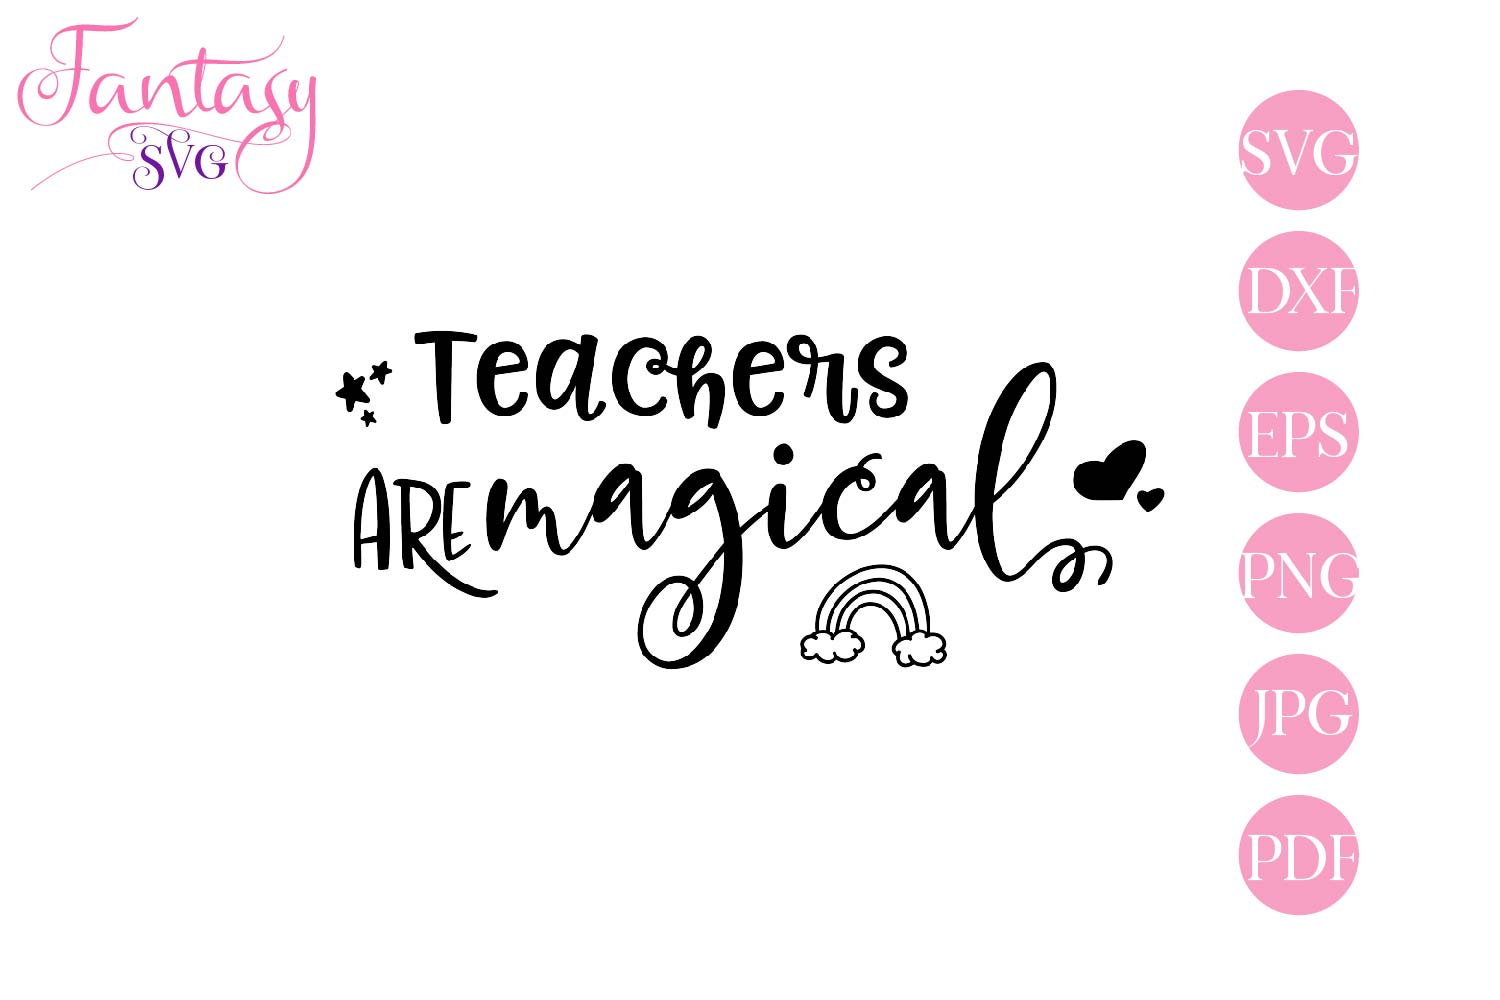 Download Free Teachers Are Magical Svg Cut Files Graphic By Fantasy Svg for Cricut Explore, Silhouette and other cutting machines.